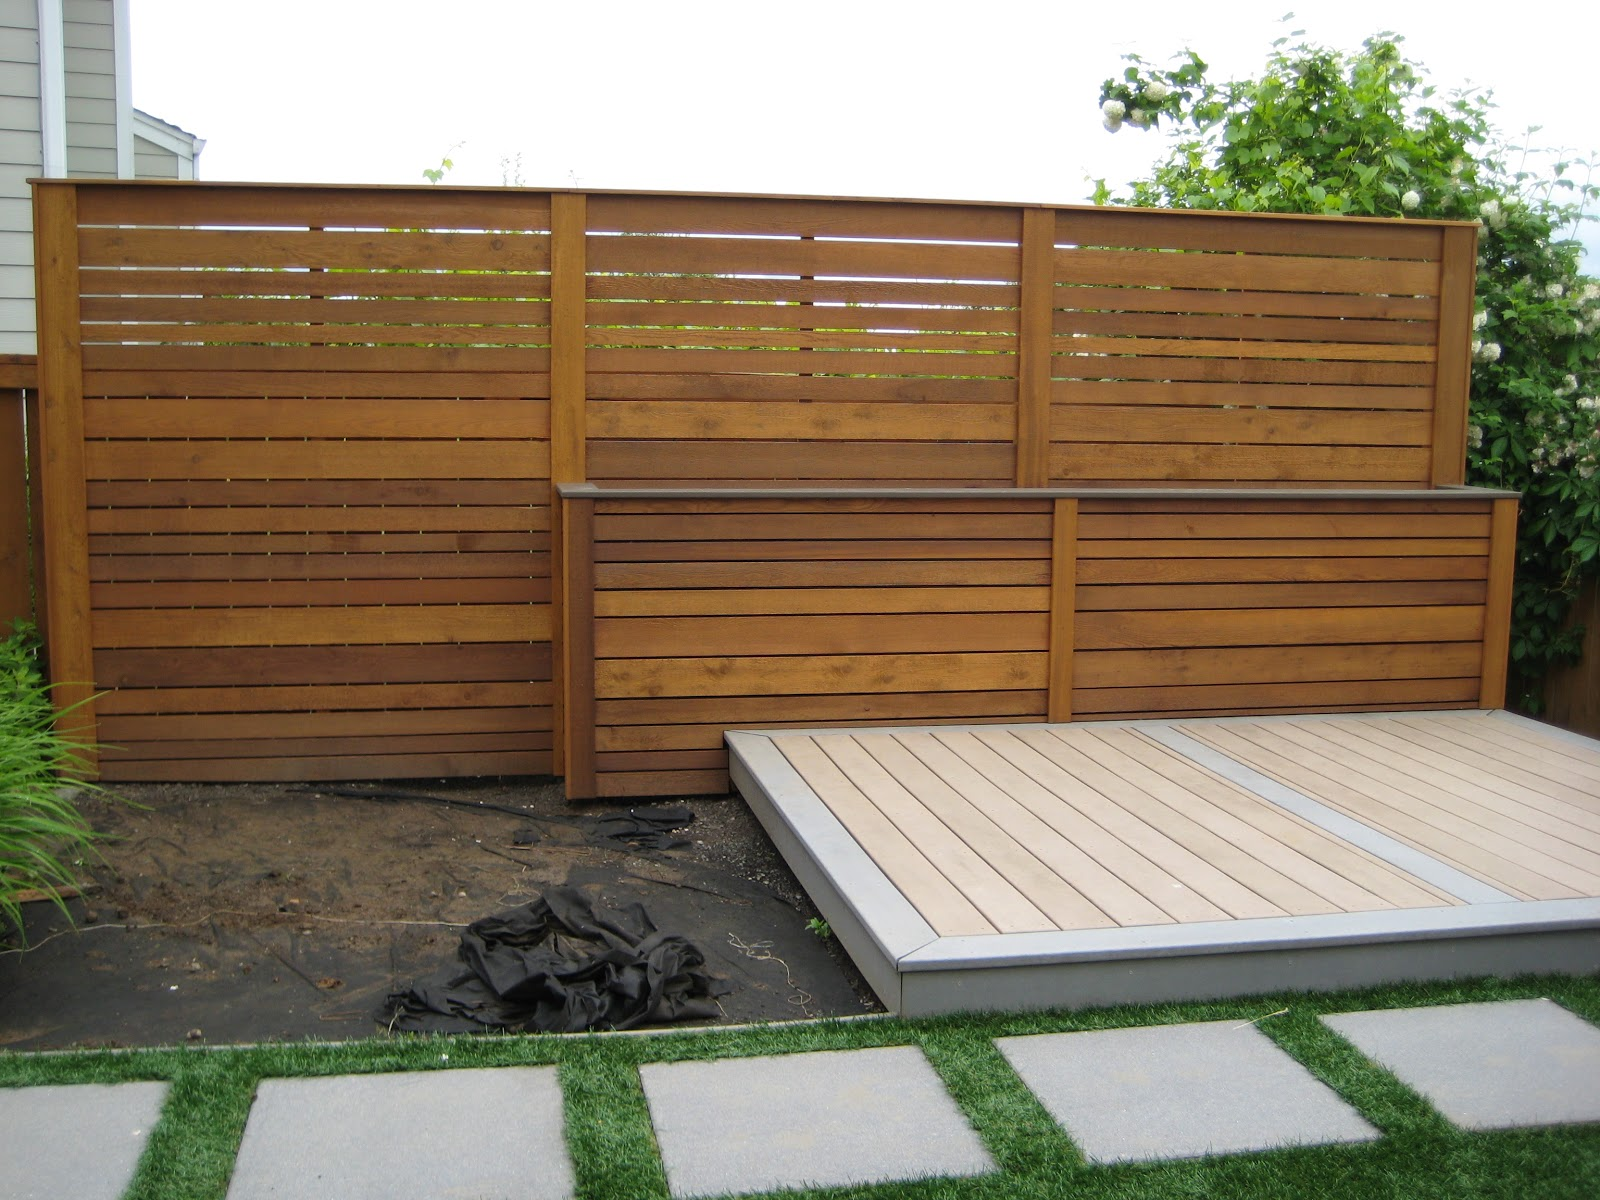 Backyard privacy wall | Nobles Project Blog